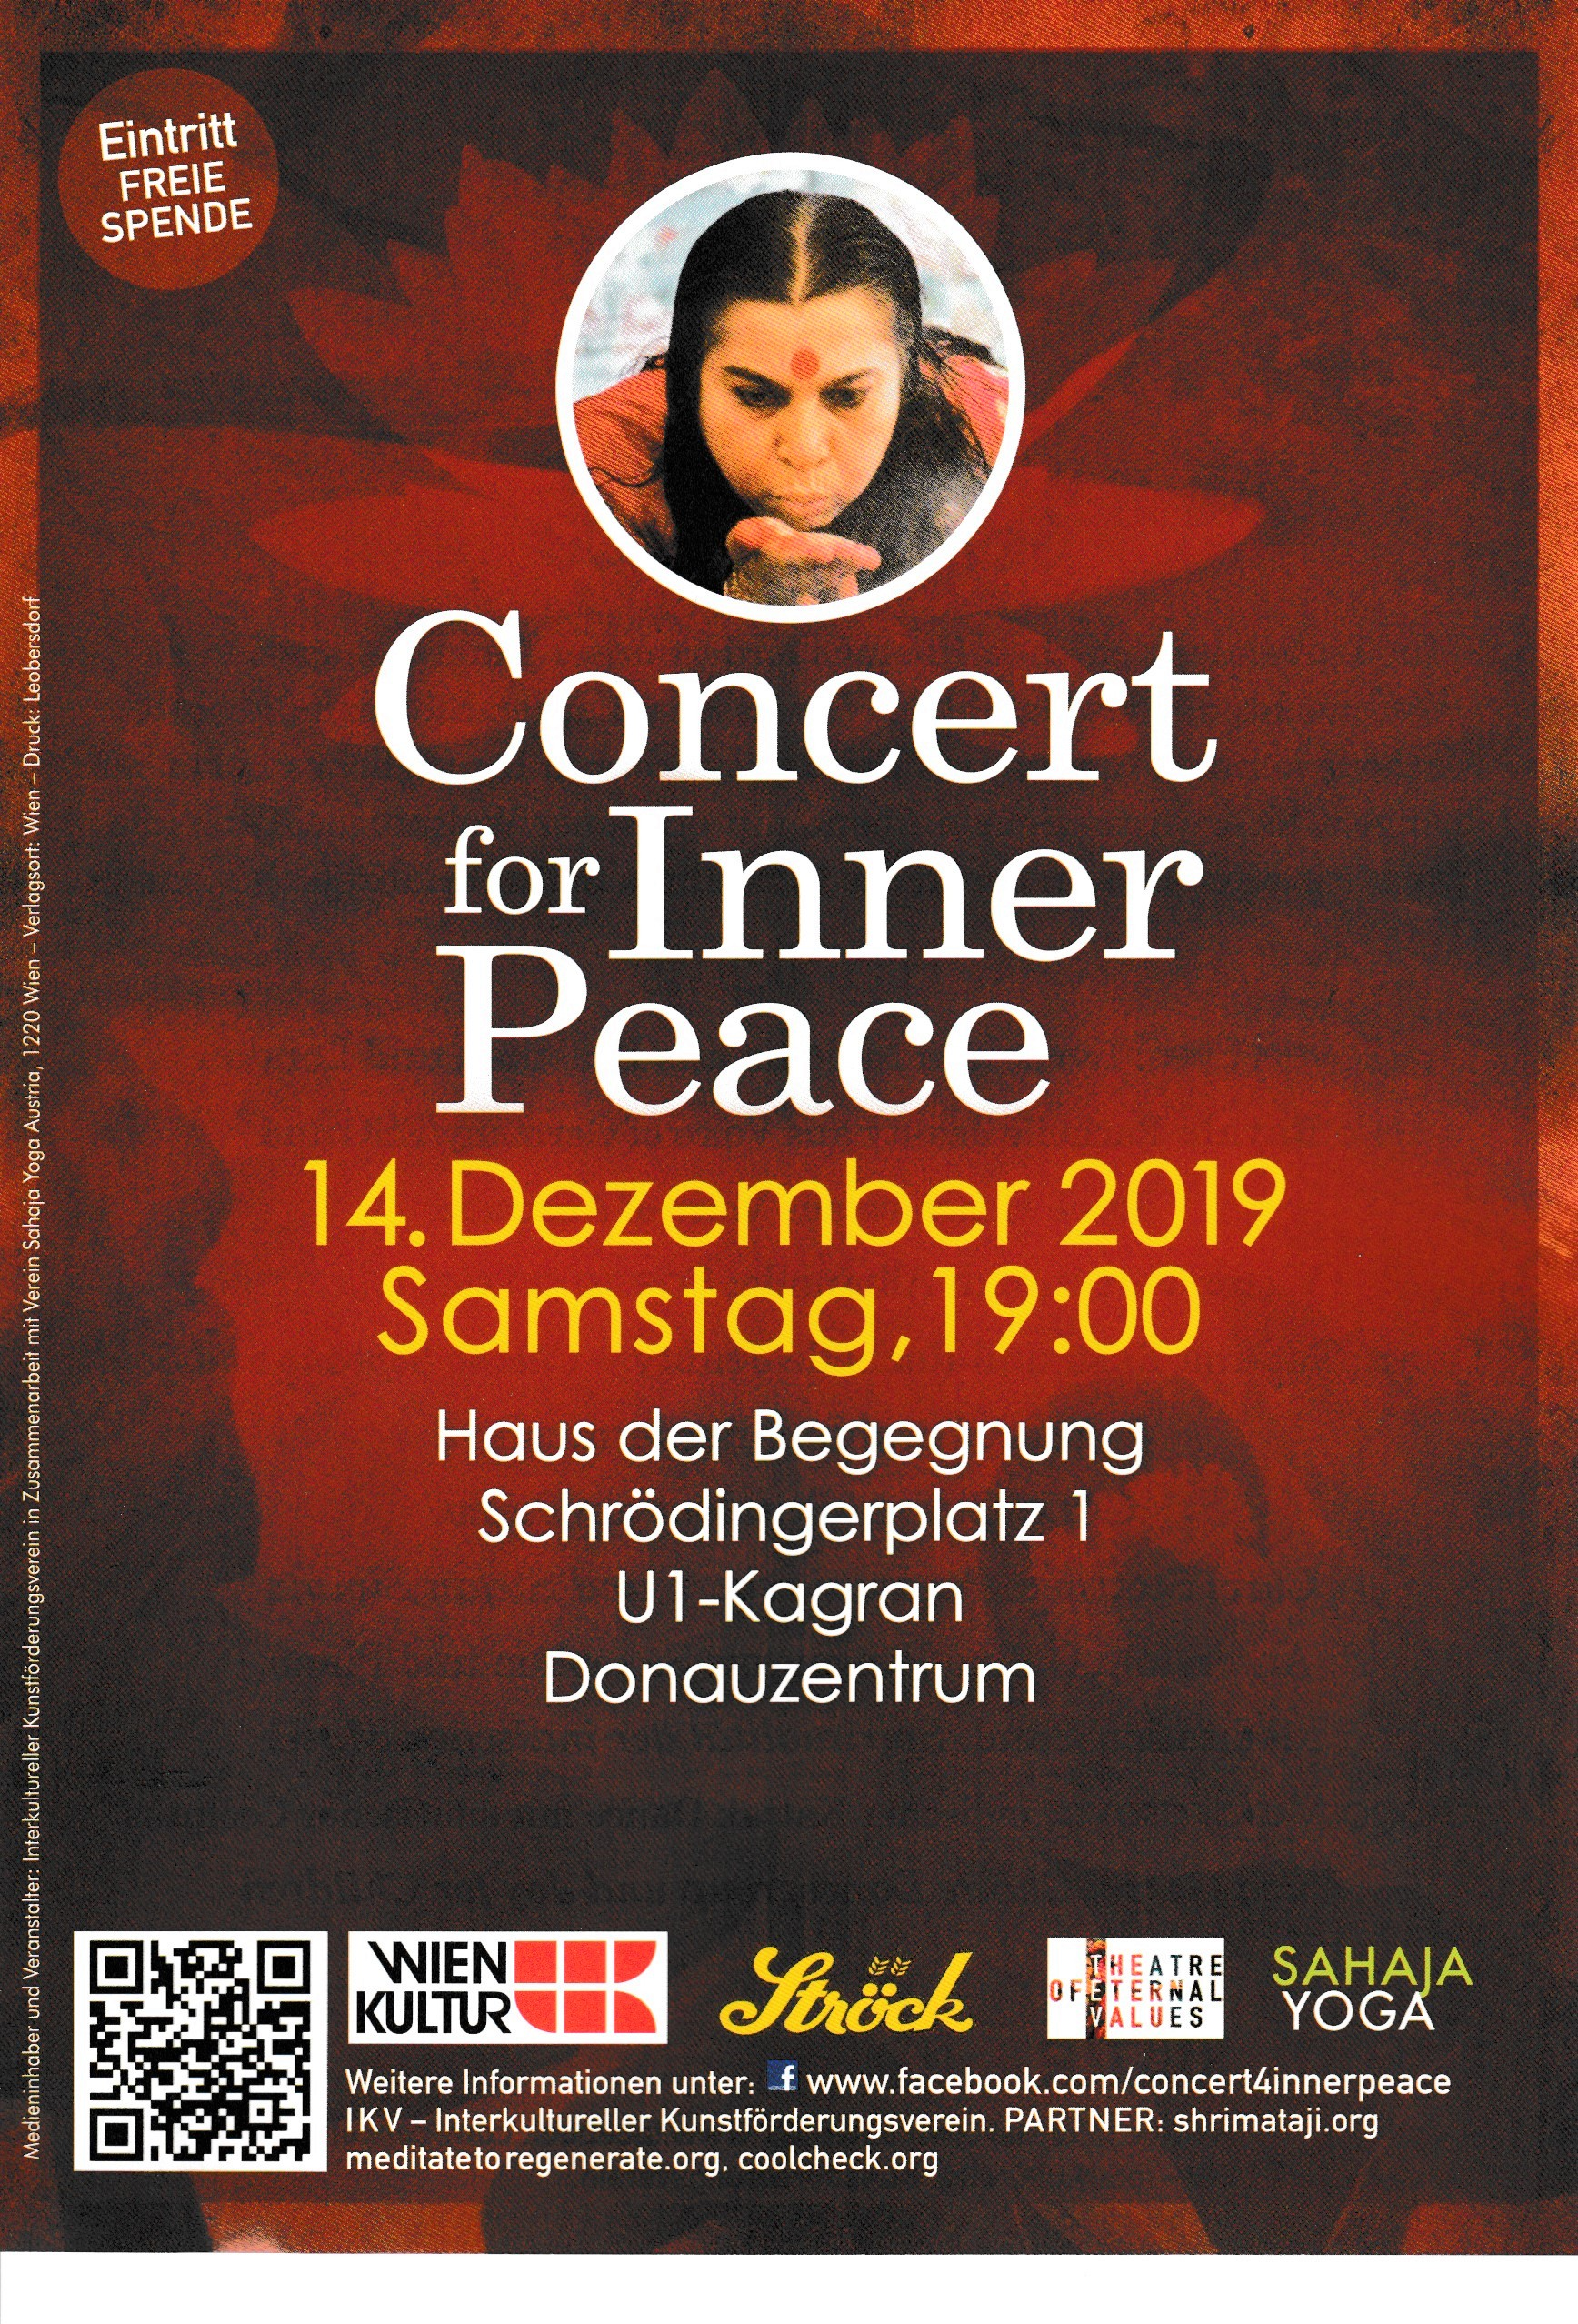 poster concert for inner peace 20191214 bri.jpg